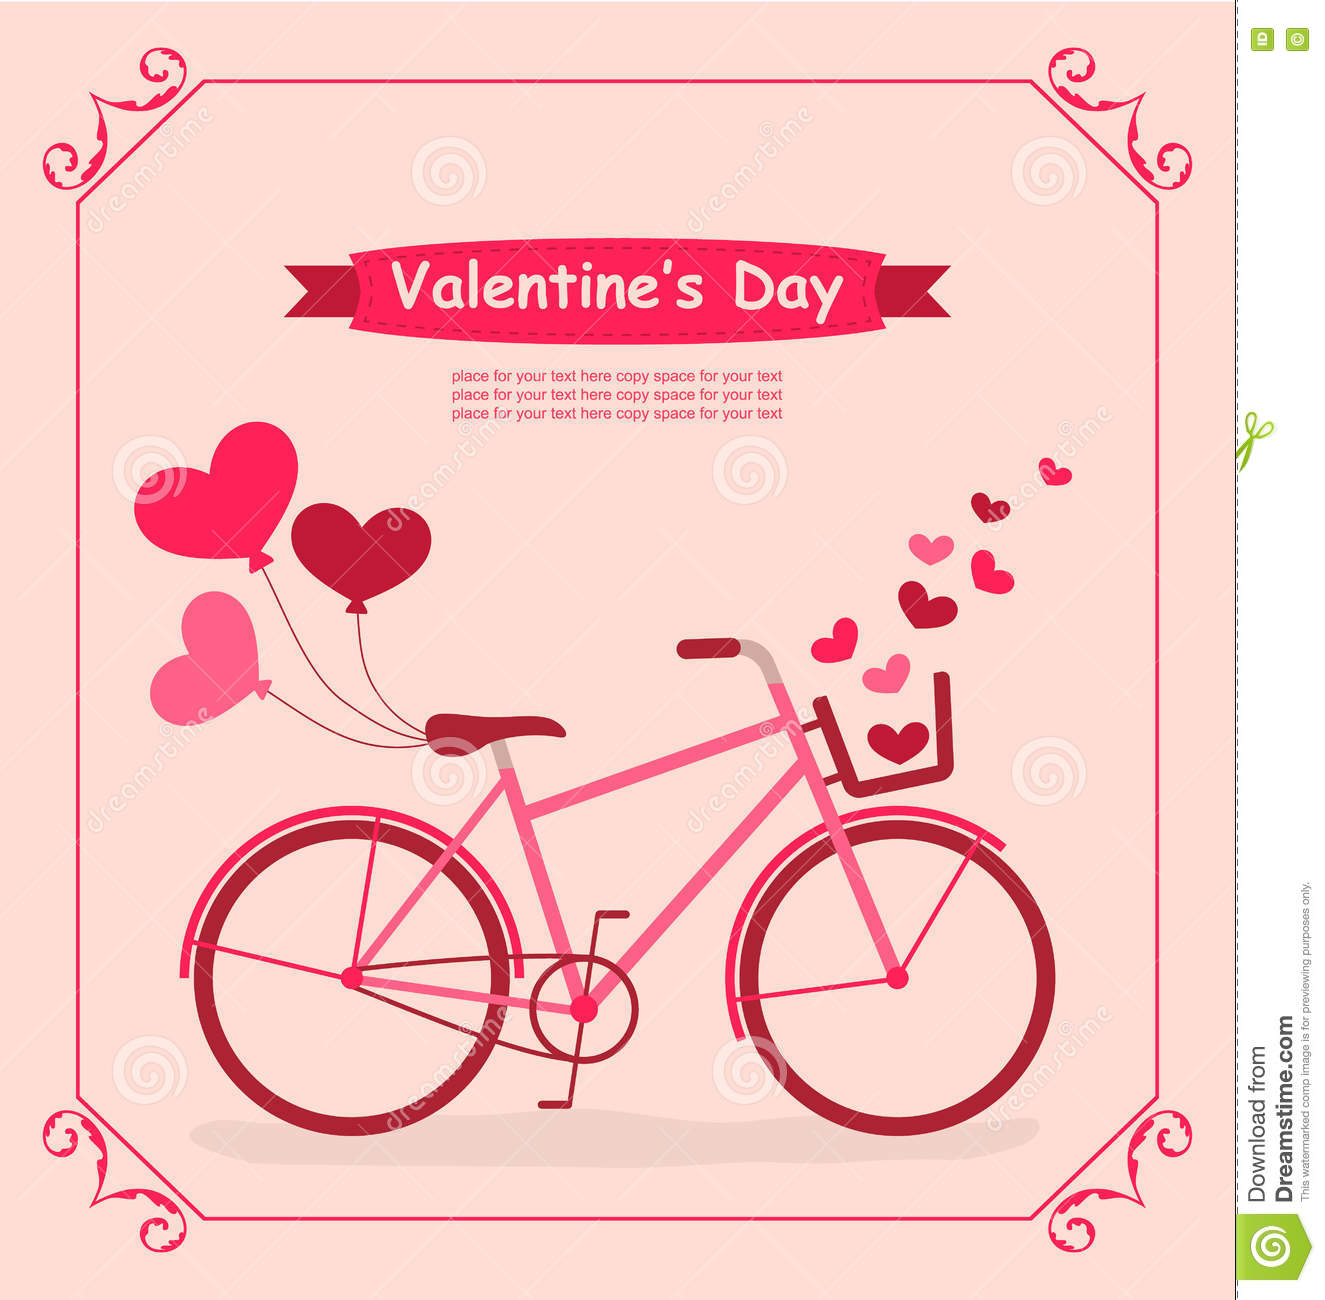 Bicycle With Balloons And Hearts Romantic Birthday Card – Romantic Birthday Card